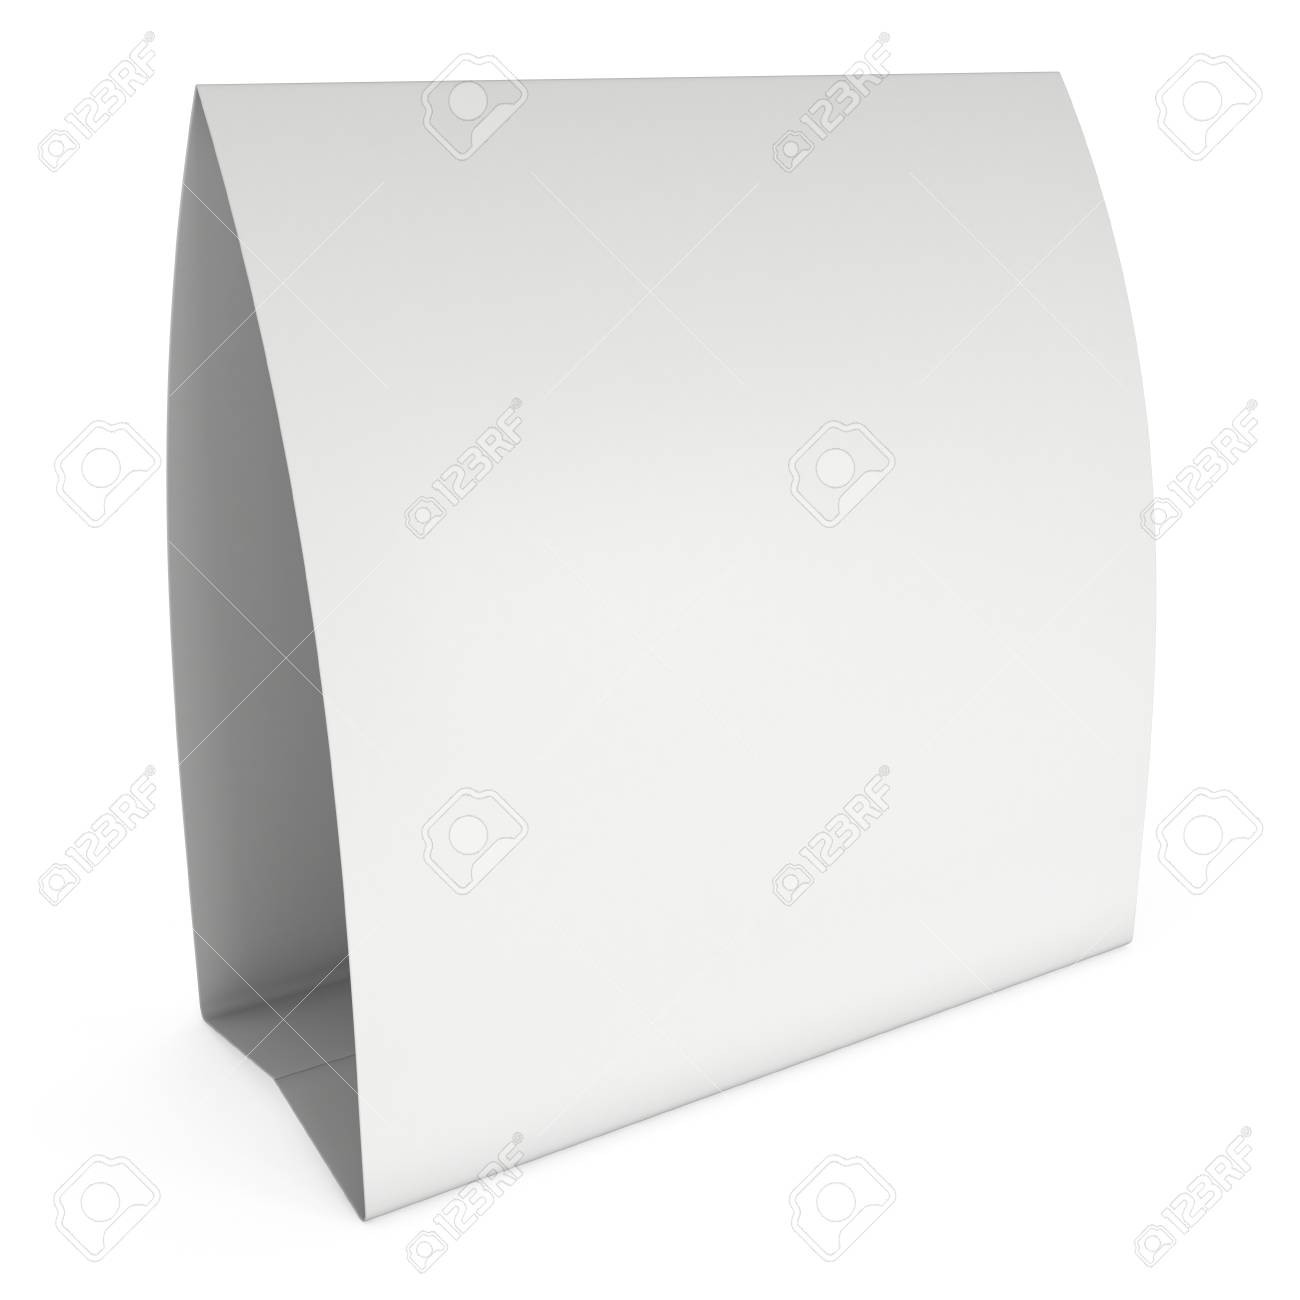 photograph about Printable Tent Card called Blank paper tent card. 3d render.